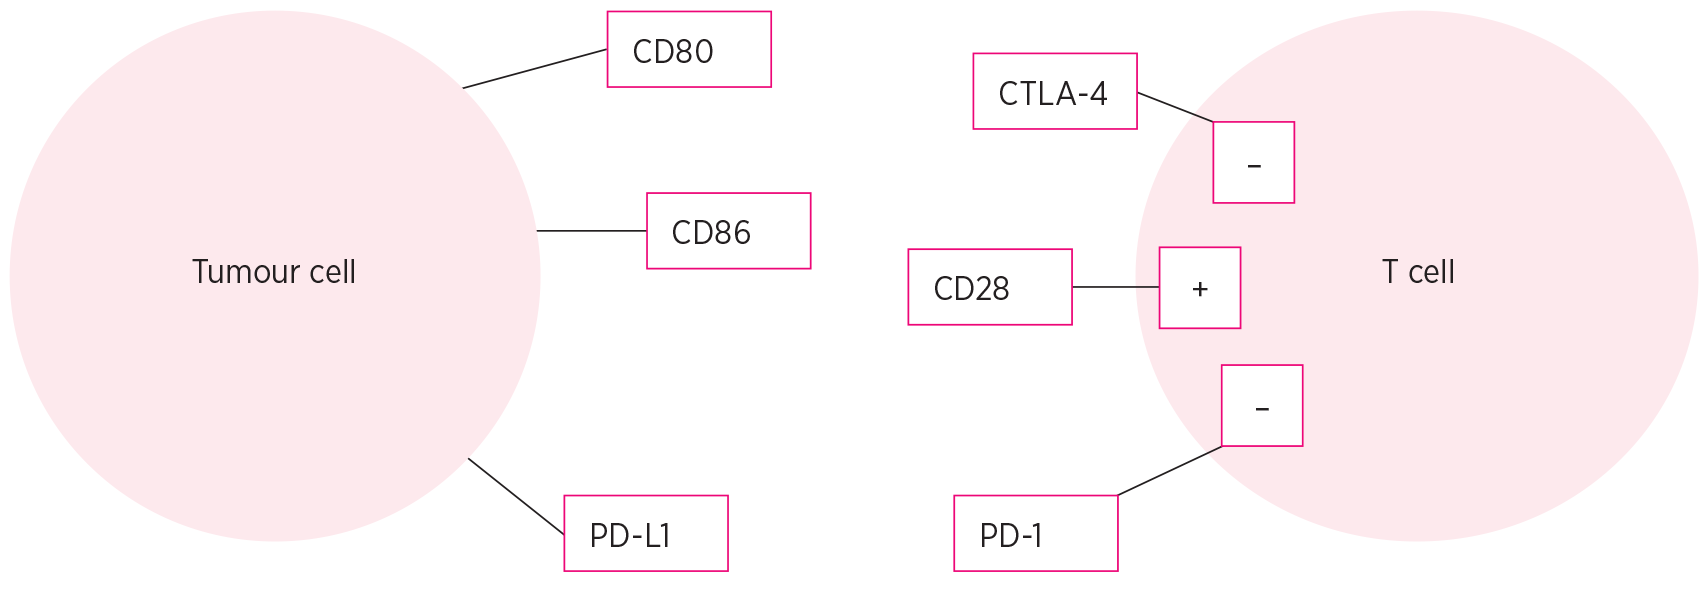 Schematic diagram showing immune checkpoints CD80, CD86 and programmed cell death ligand 1 on a tumour cell, and cytotoxic T-lymphocyte associated antigen 4, CD28 and programmed cell death 1, and their effects on stimulatory and inhibitory pathways, in a T cell.